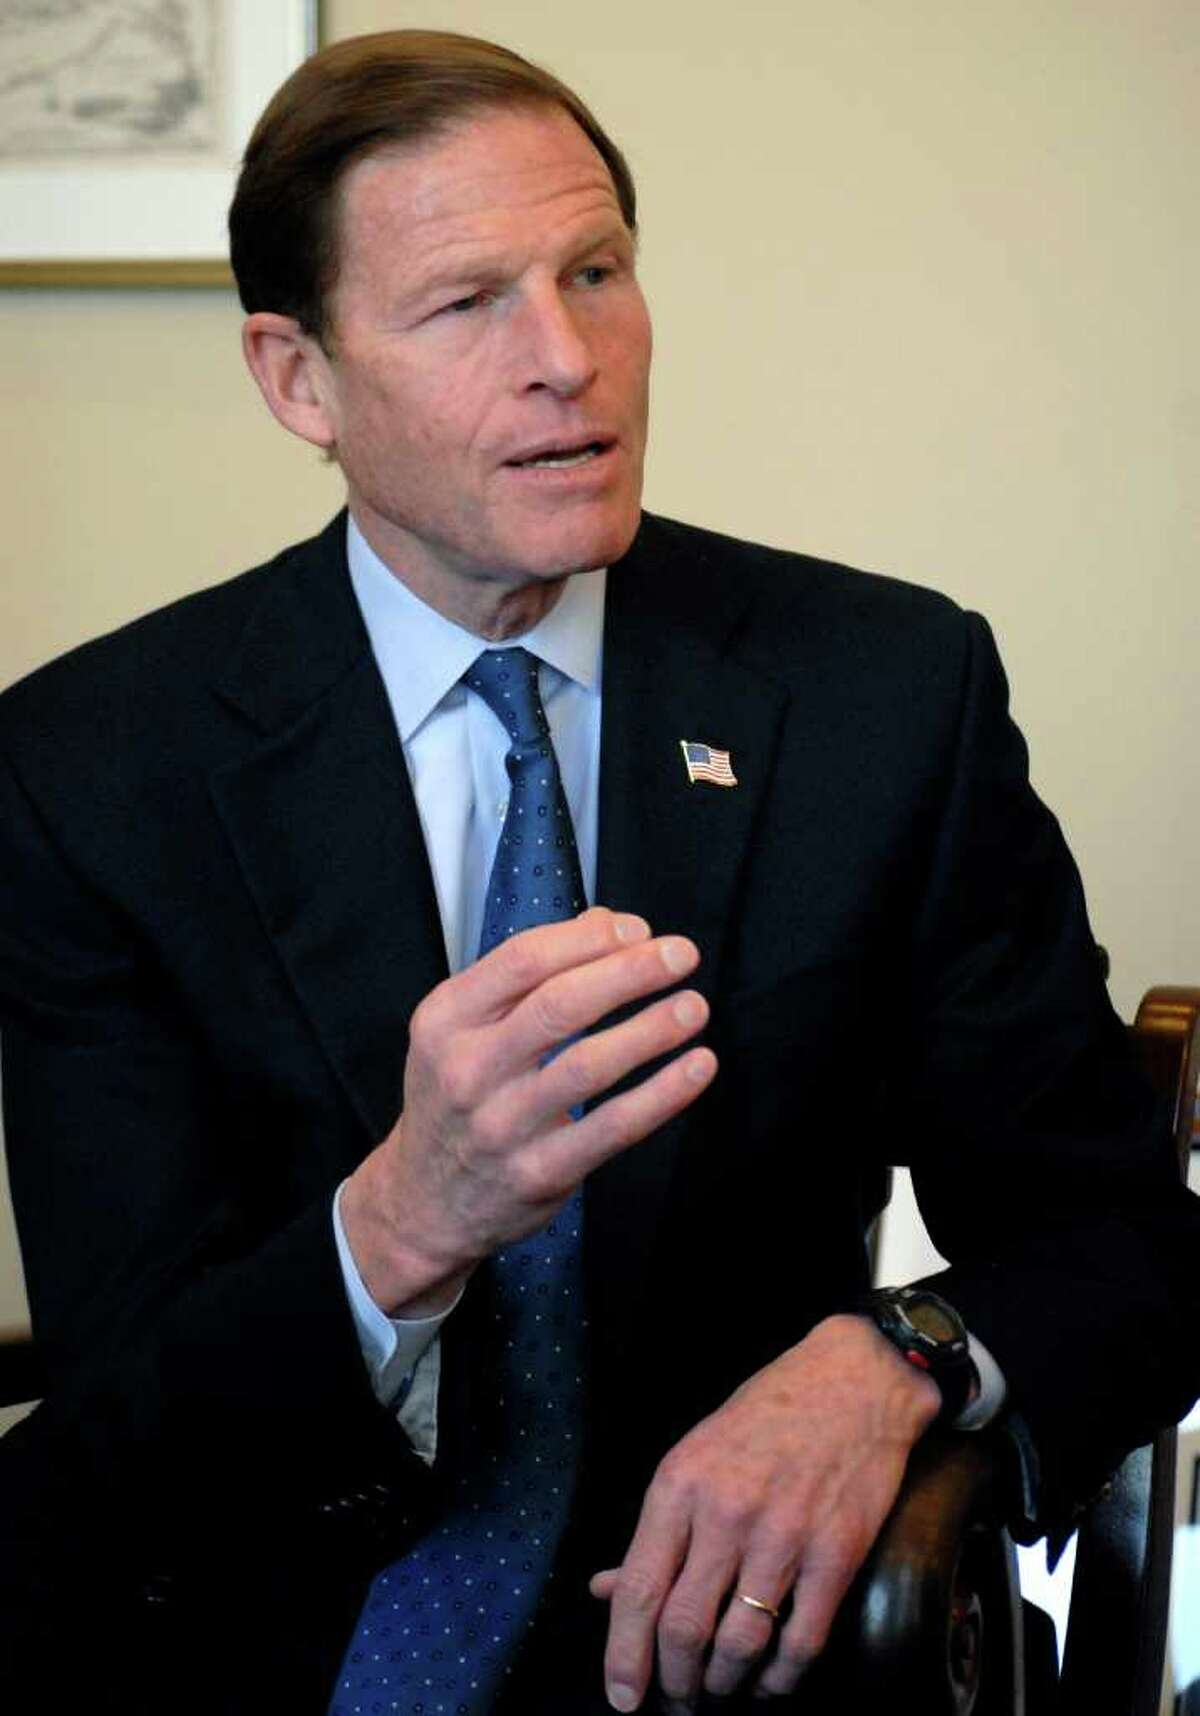 Sen. Richard Blumenthal, D-Conn., in his Washington office on Wednesday, Feb. 15, 2012, discusses his first year in the U.S. Senate. BlumenthalâÄôs Washington headquarters is in the modern Hart Senate Office Building where the two-story windows in his private office open toward the eastern horizon. He commutes on weekends back home to Greenwich and travels around the state from there.